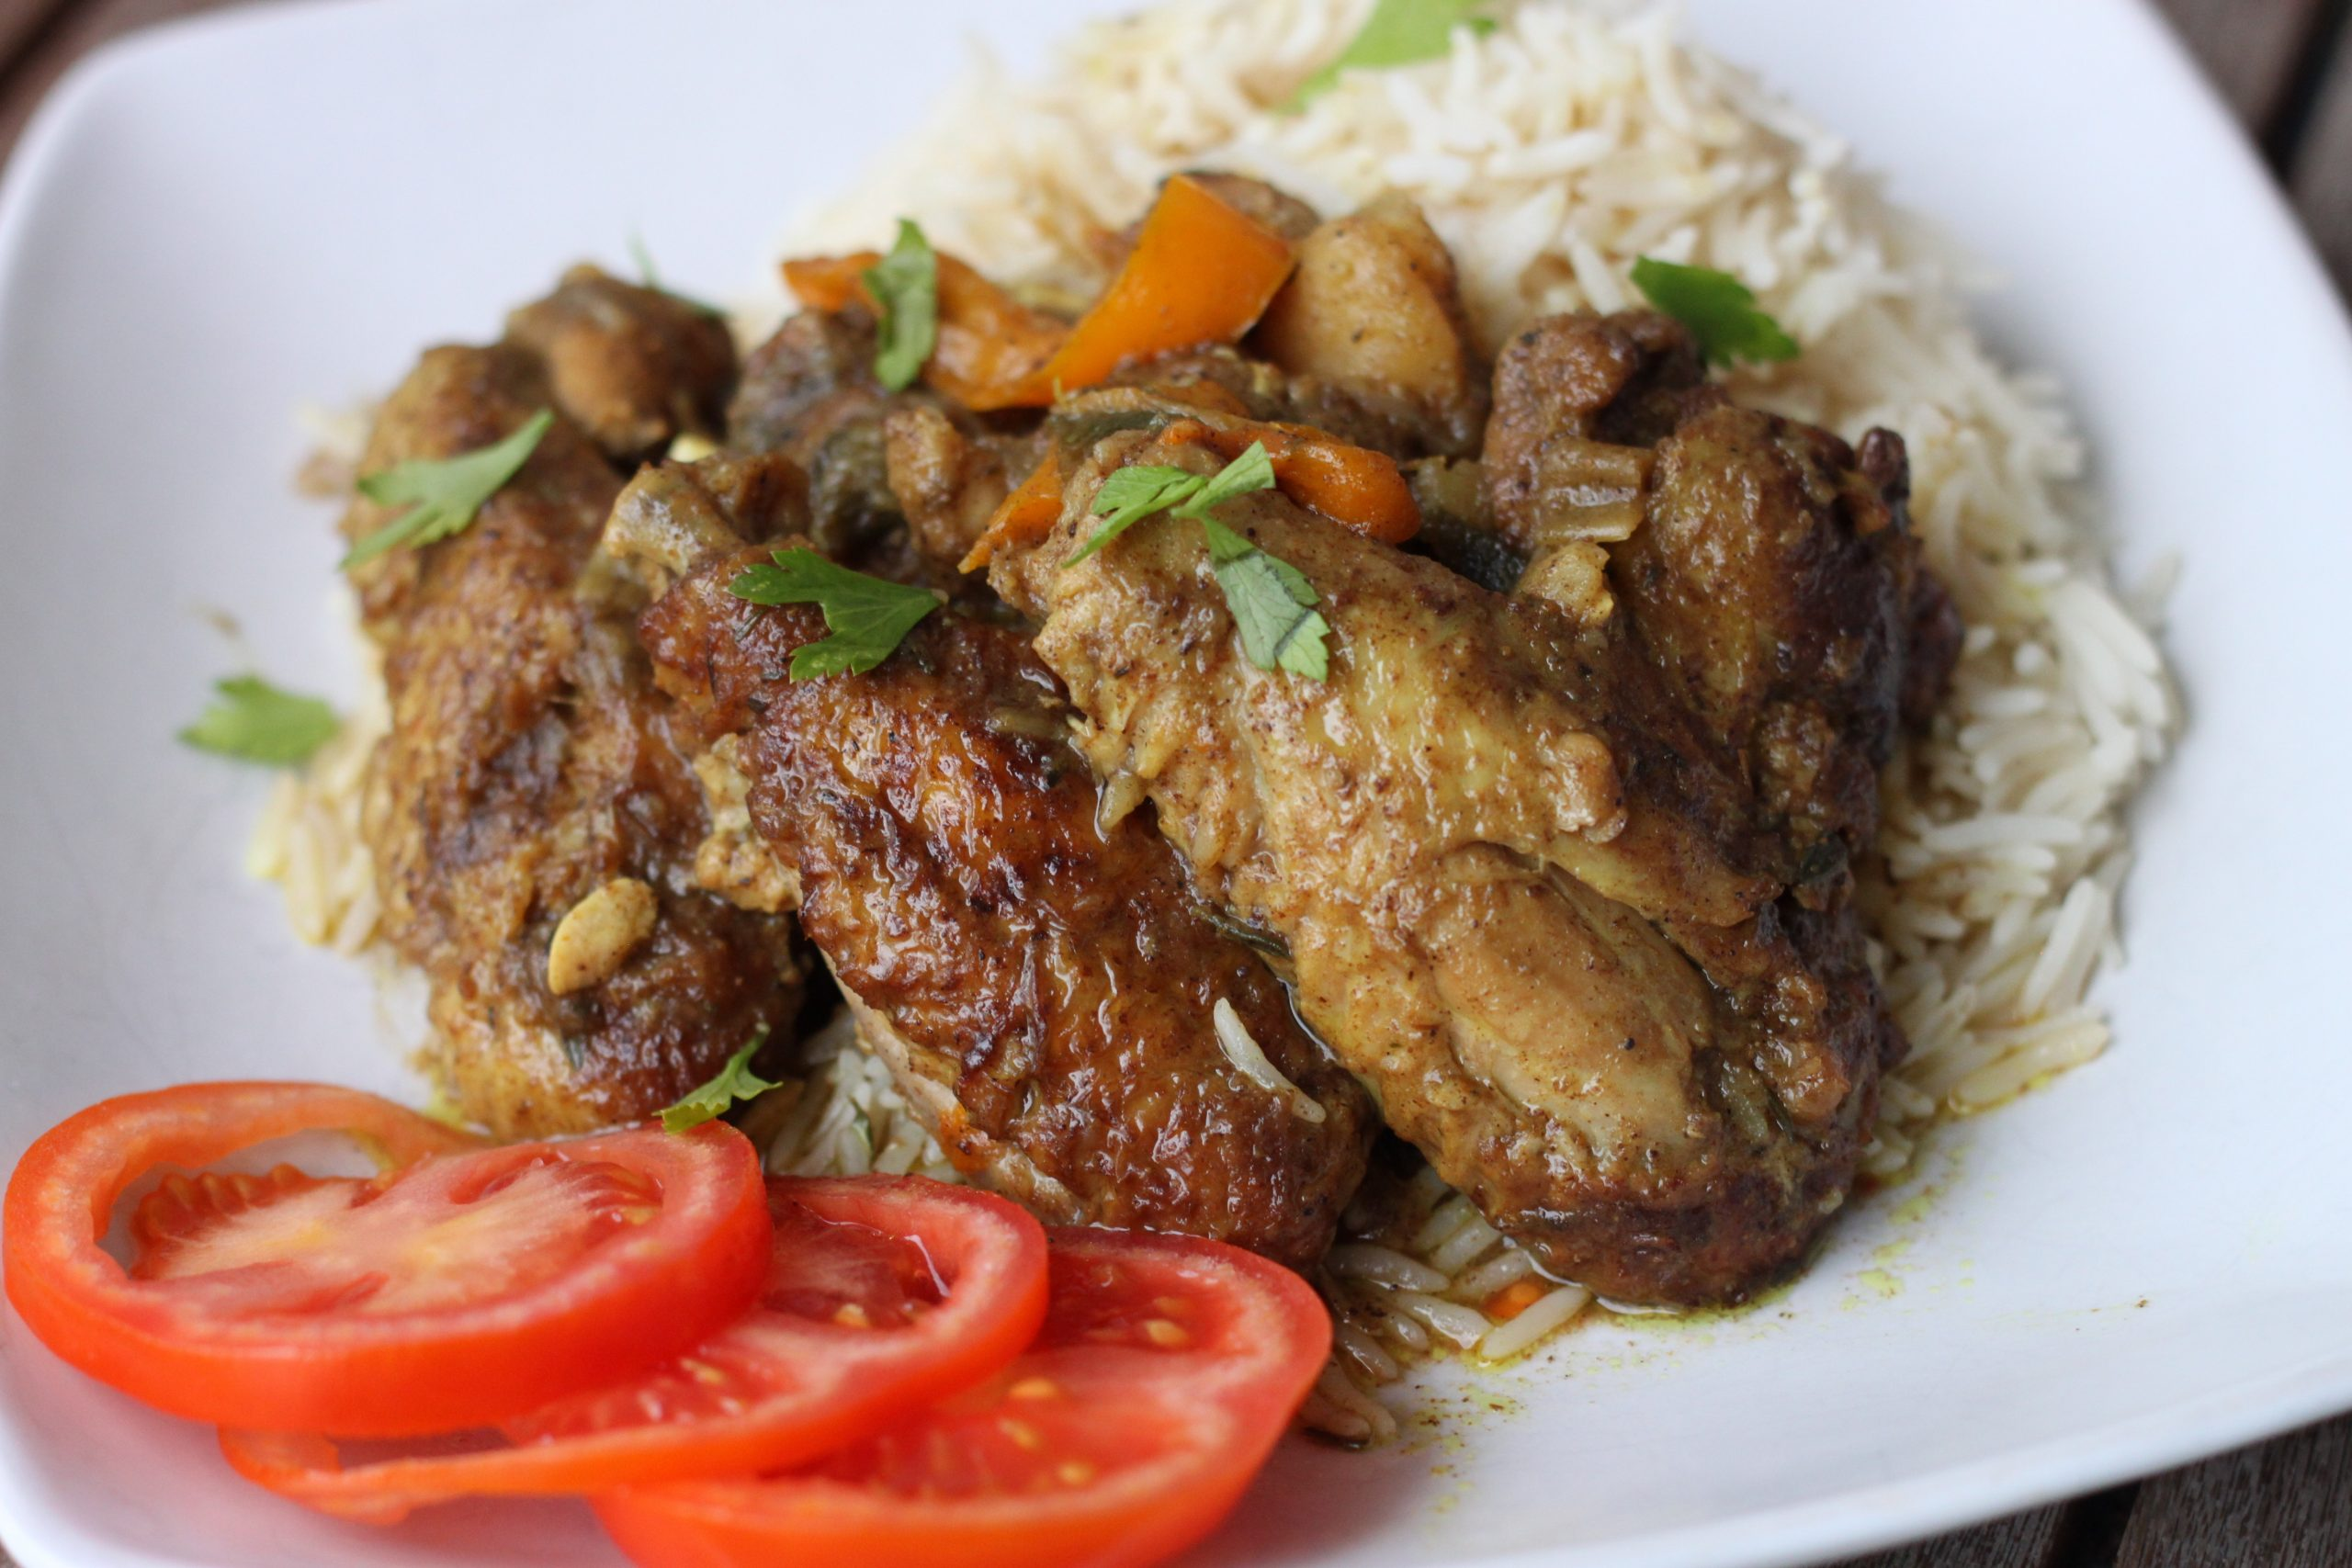 Curry Chicken wings for a Quick Caribbean Meal